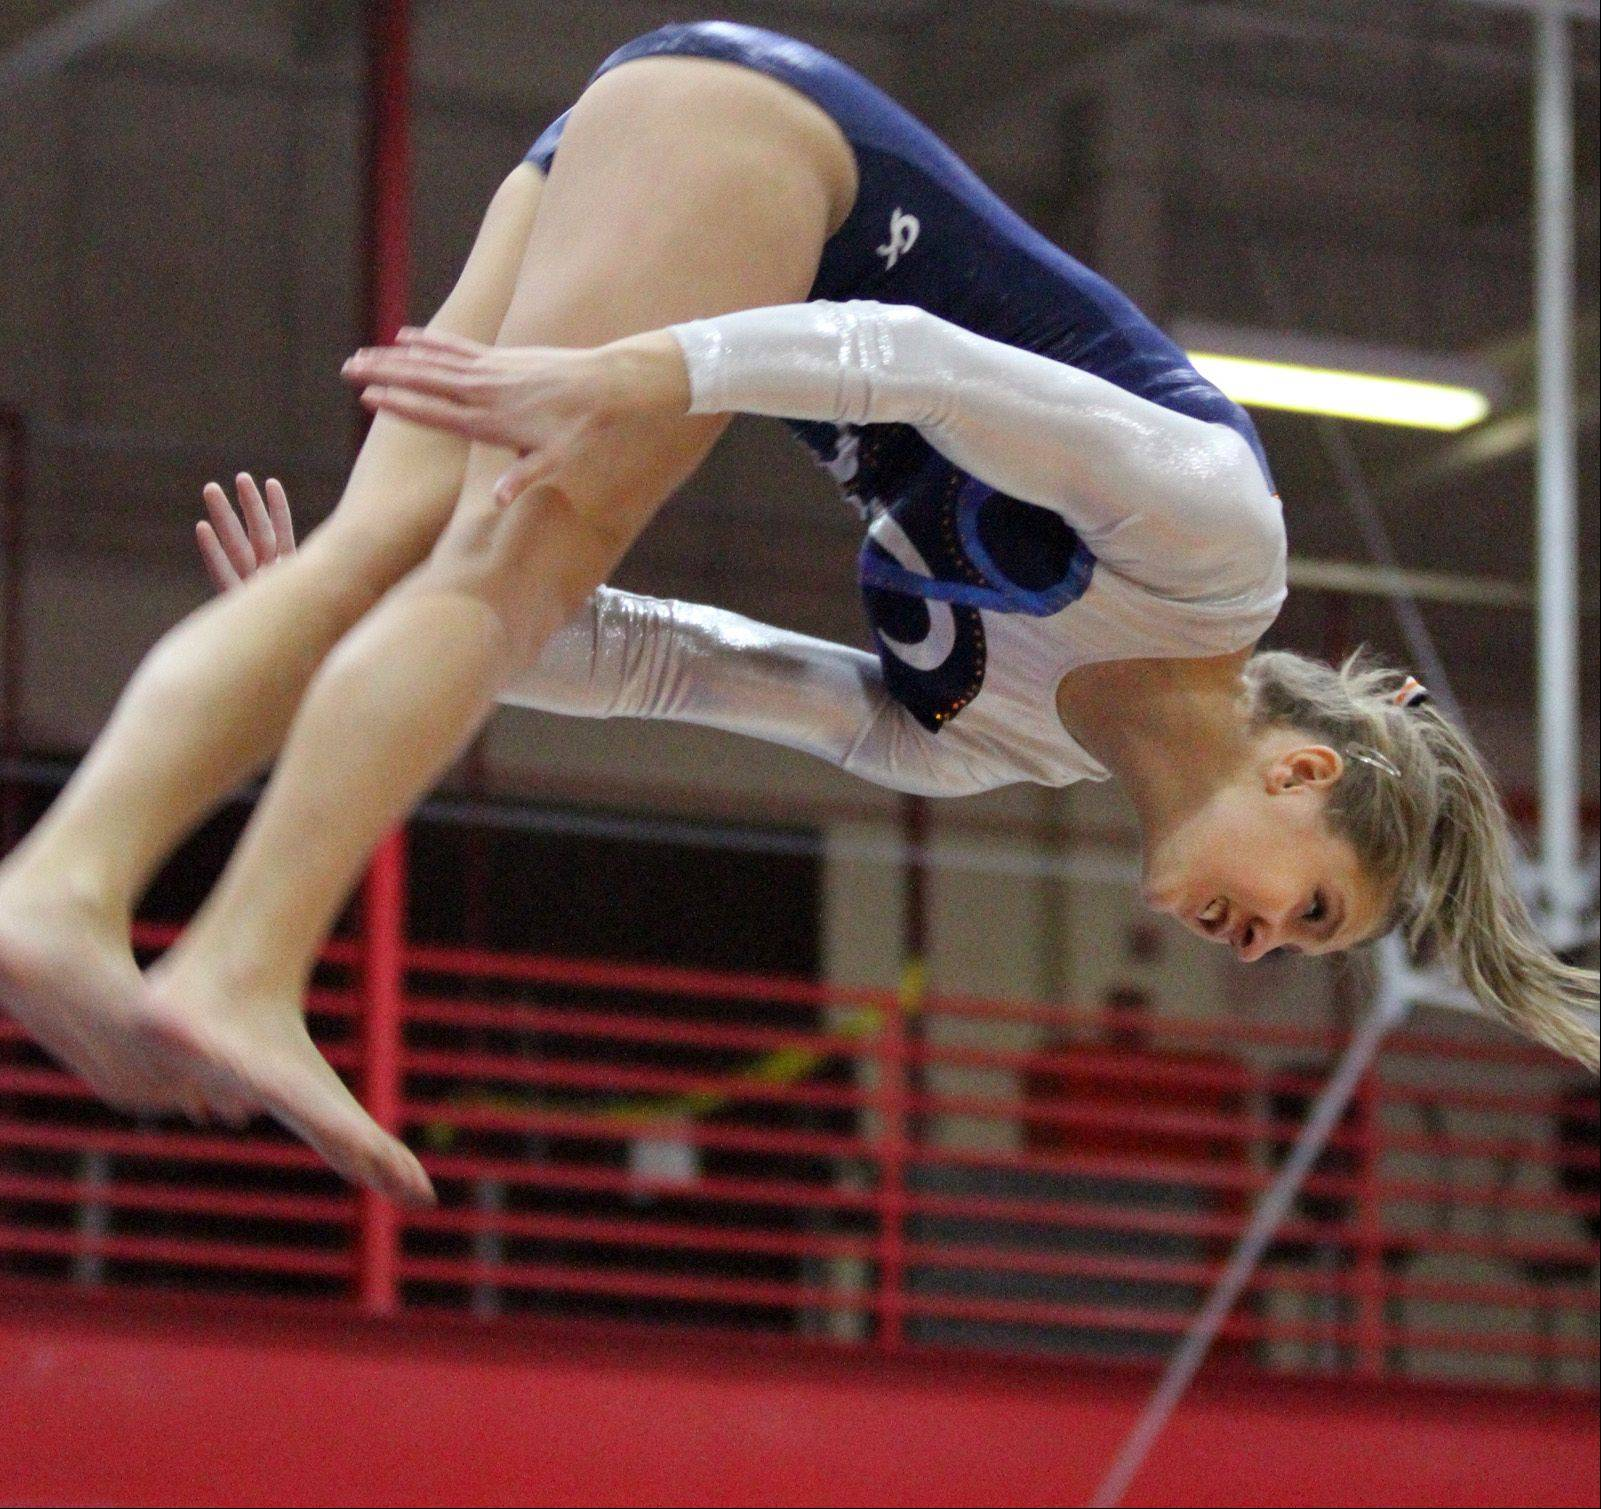 Naperville North's Shelby Porter dismounts from the vault at Palatine invitational girls gymnastics meet in Palatine on Saturday.